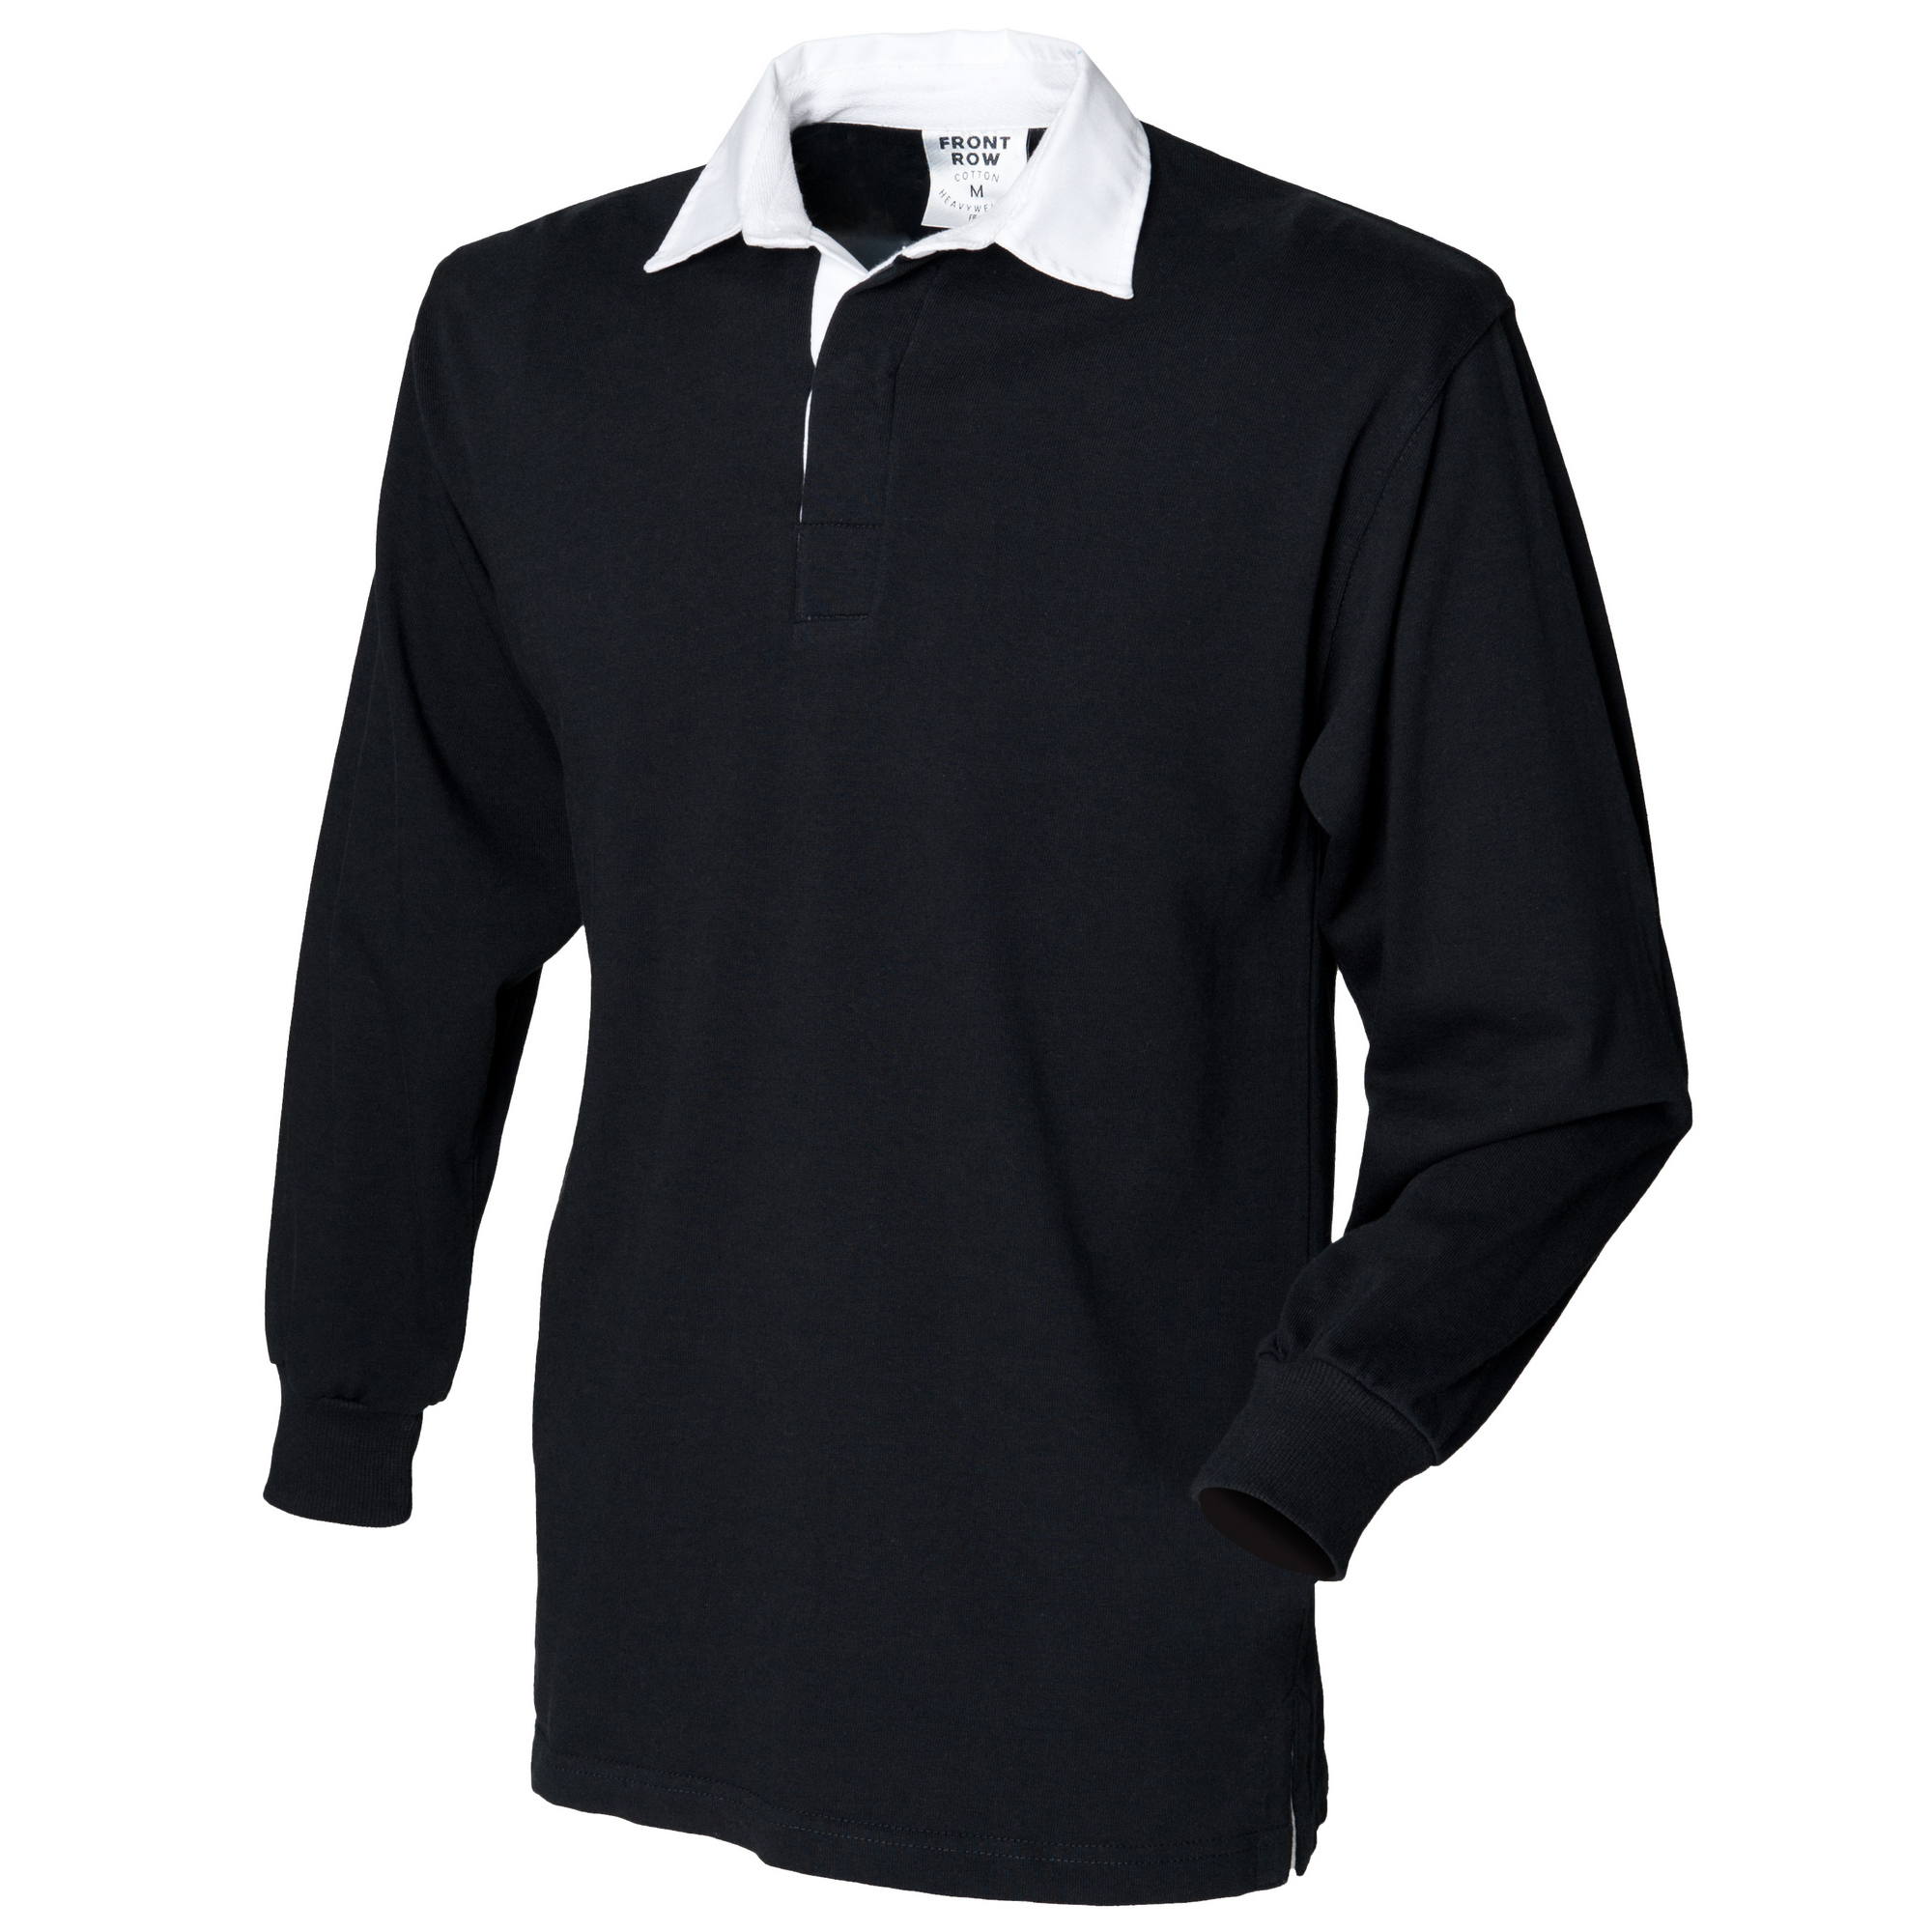 Front Row Kids Unisex Long Sleeve Plain Rugby Sports Polo Shirt (Pack of 2) (L) (Black)